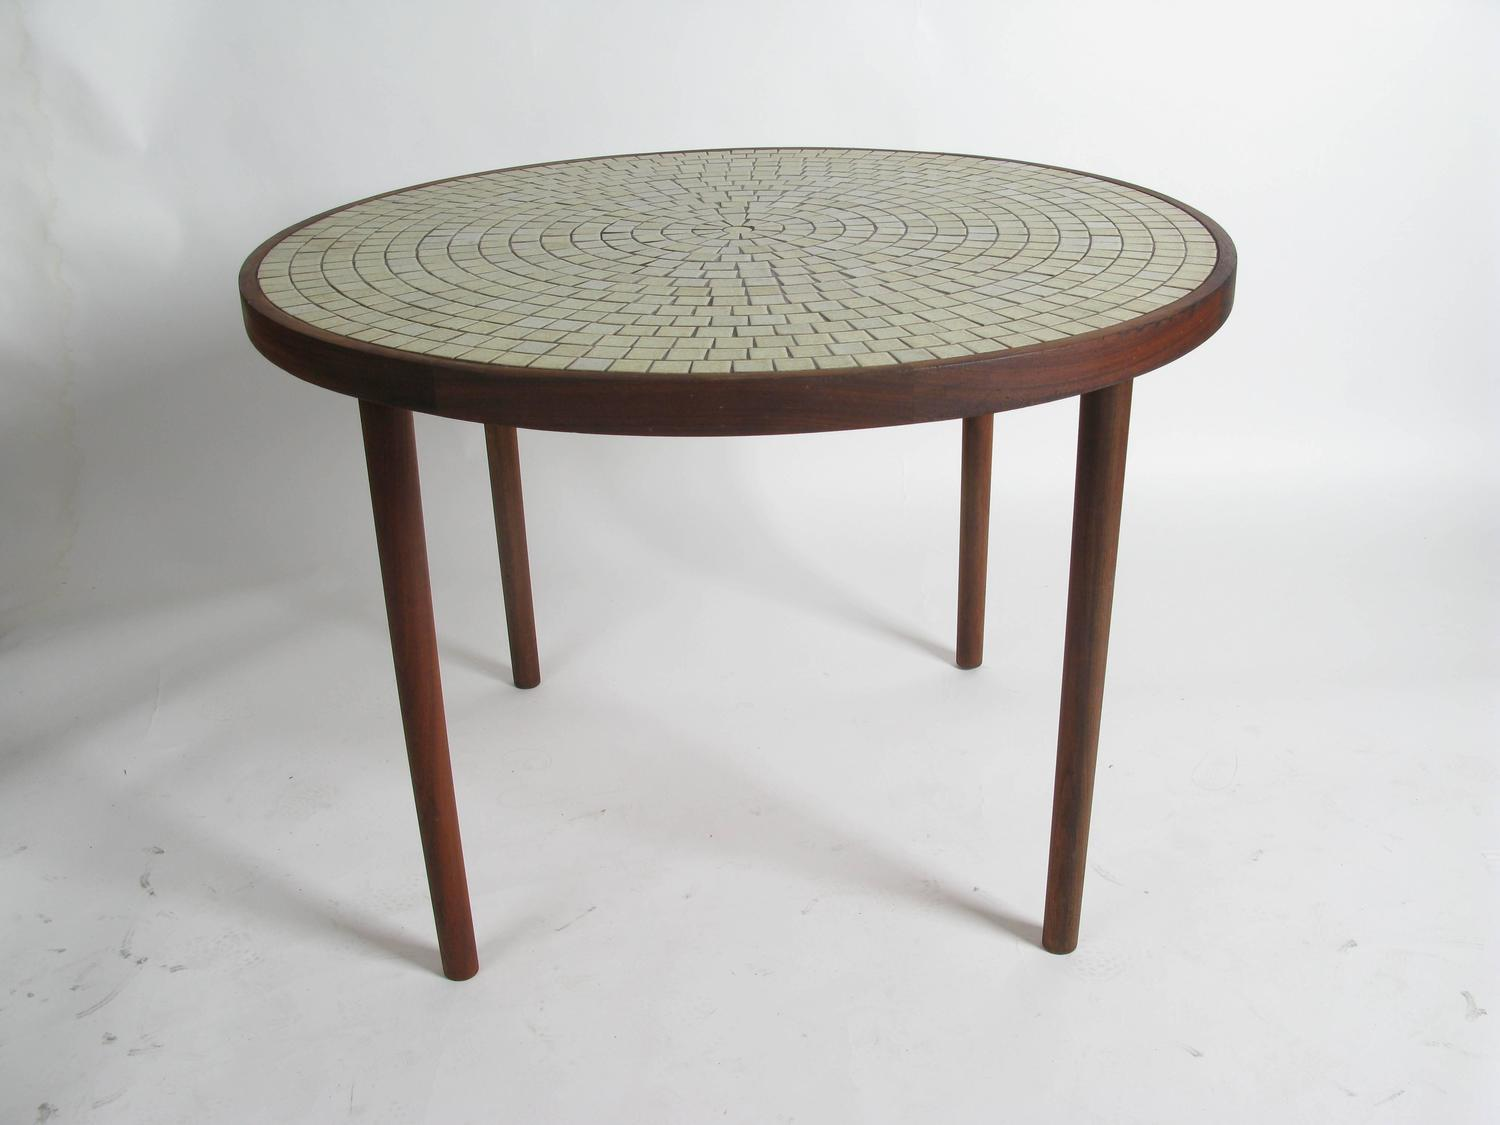 walnut and ceramic tile dining table by gordon martz for sale at